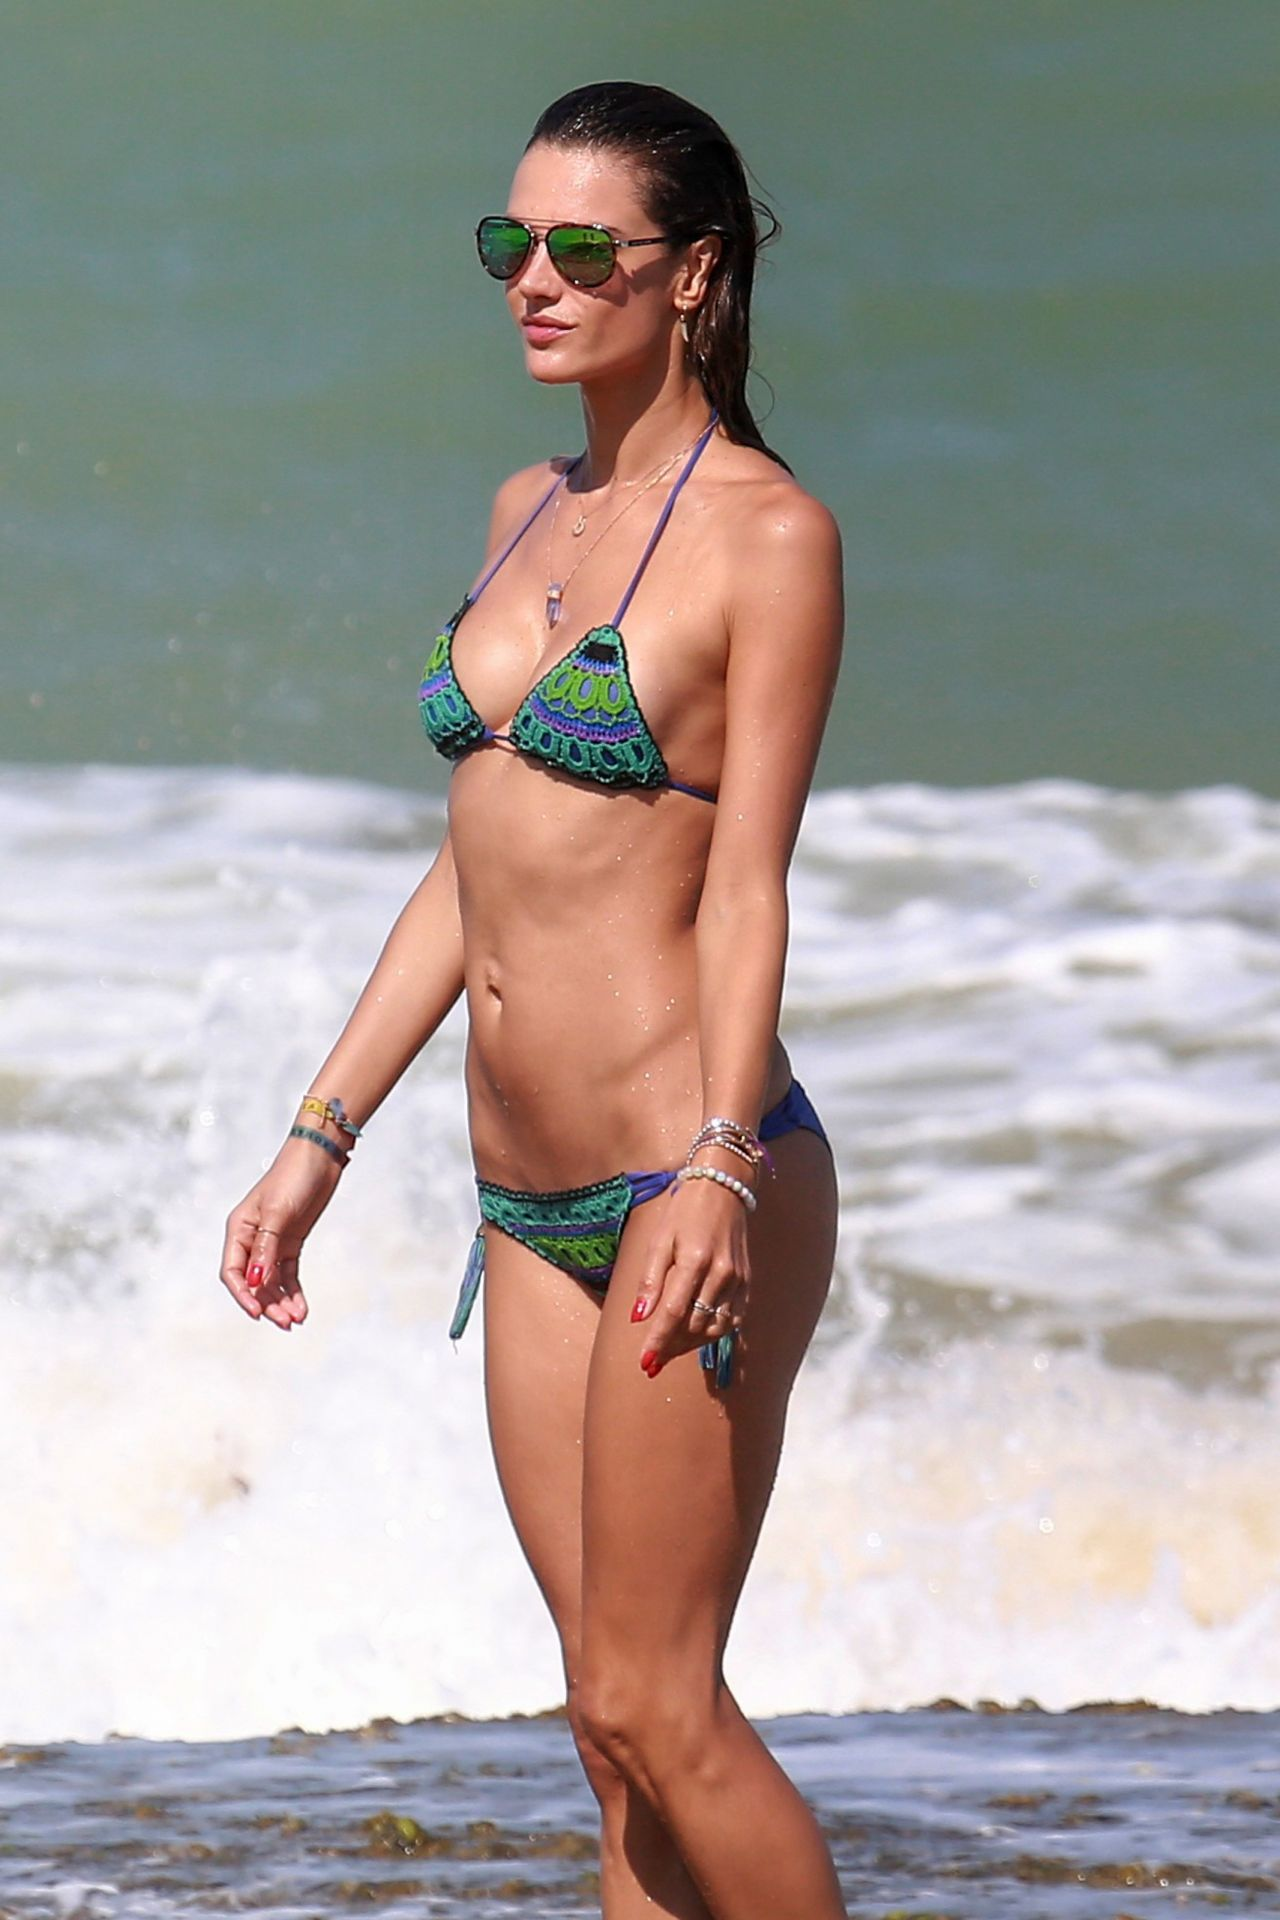 Alessandra ambrosio in swimsuit at the beach in malibu new pics